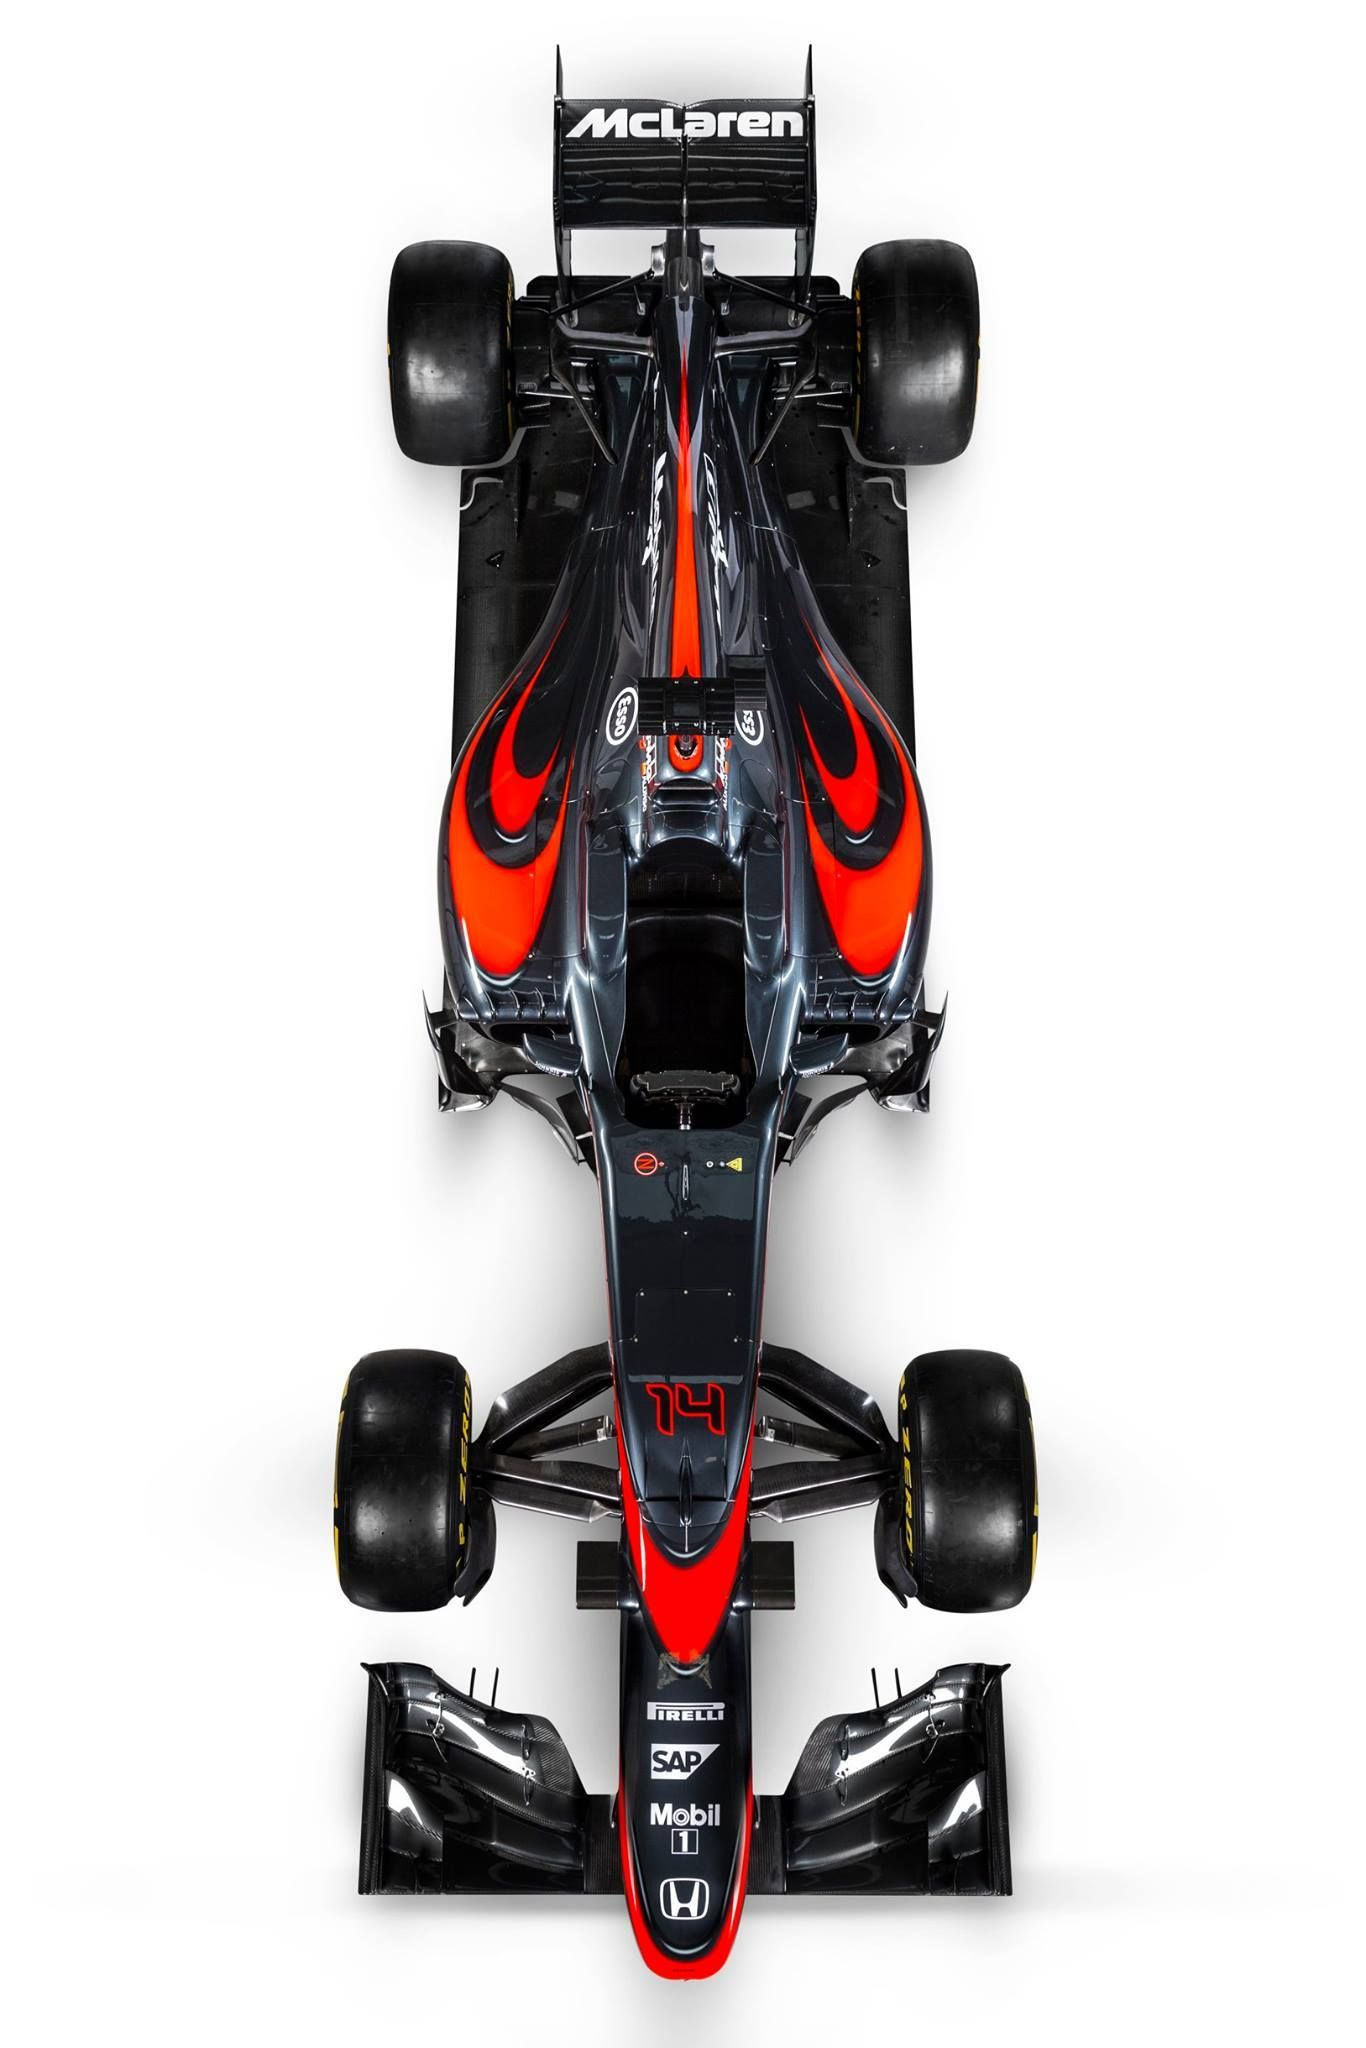 McLaren Honda MP430 New Colouring. Hopefully this one is